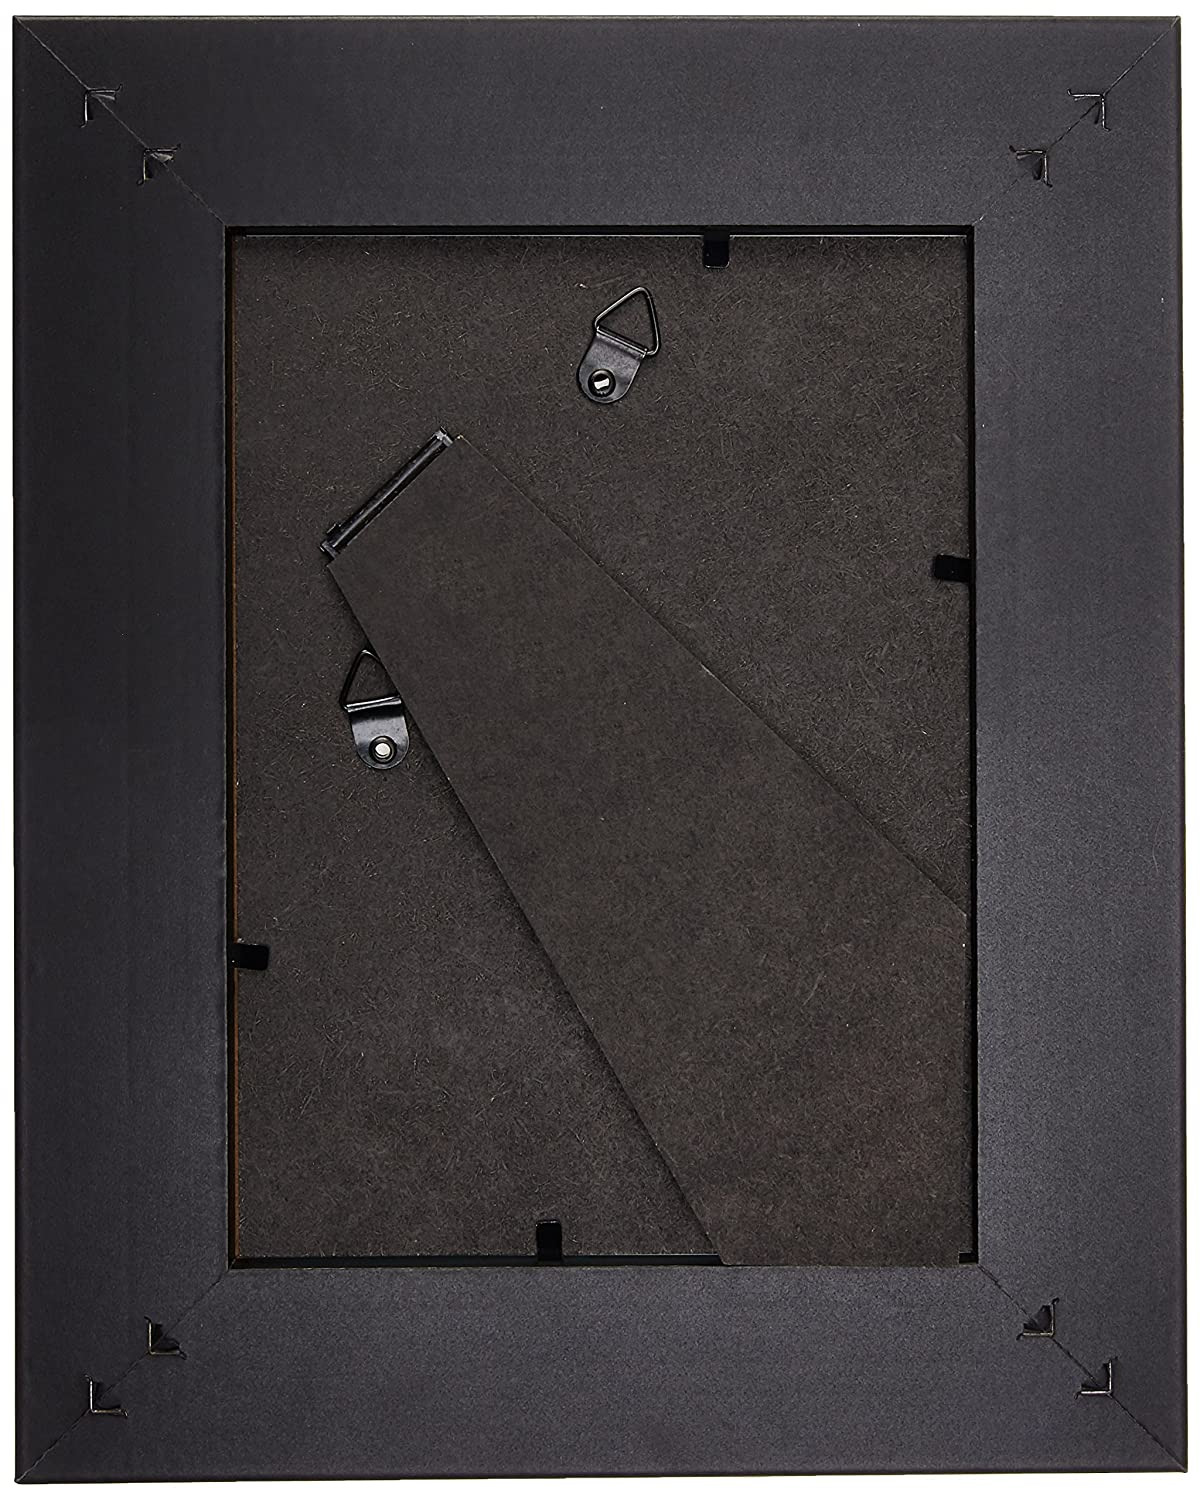 EDGEWOOD Lakewood 4pcs wide bevel black photo frame sets with mat and removable easel 5x7 inch Black FBA/_1079102107